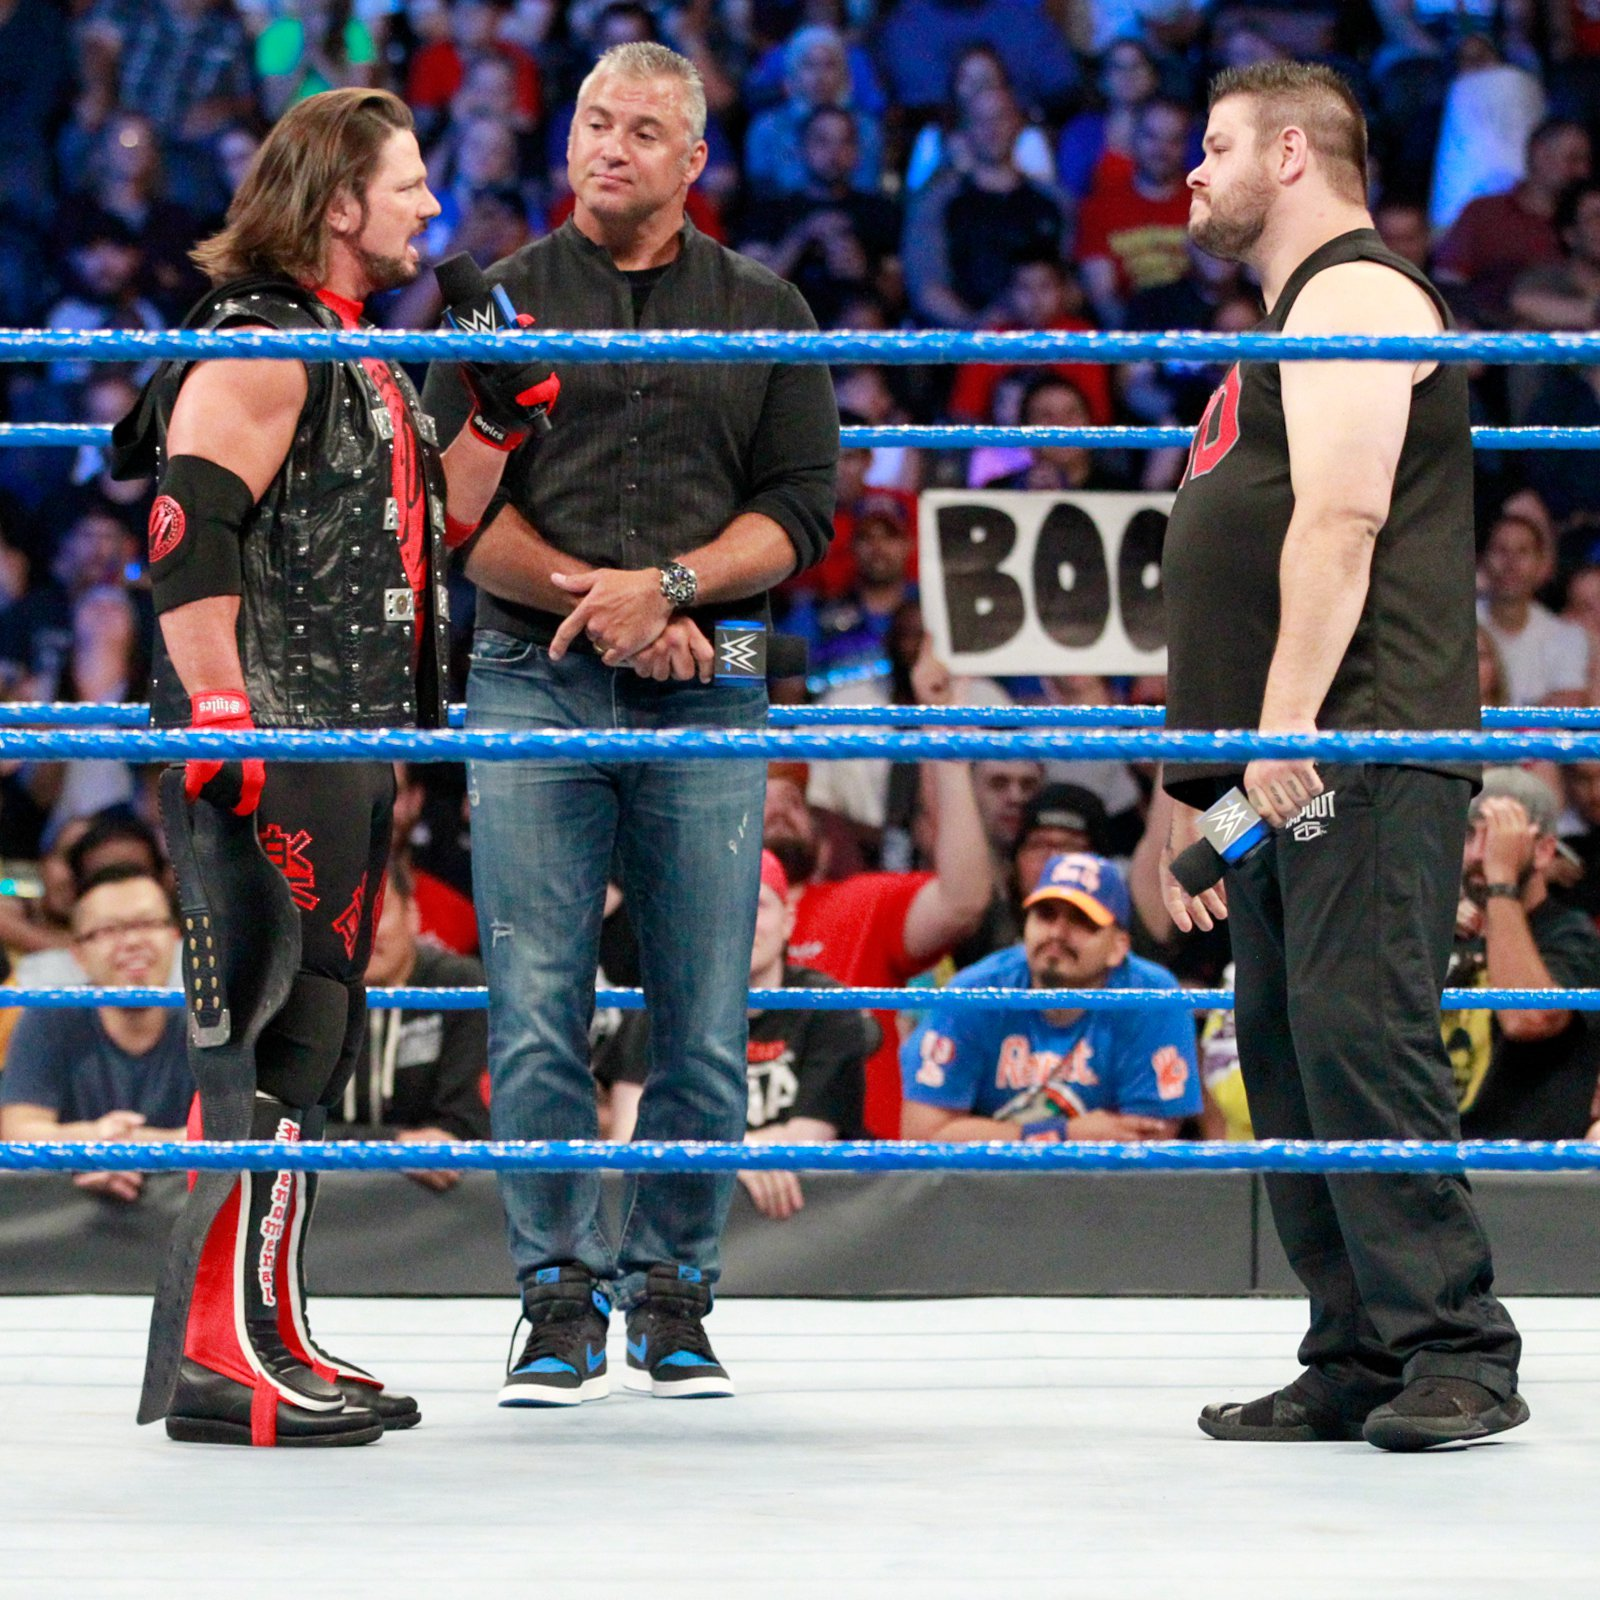 Styles suggests they have their U.S. Championship Match right here and now...